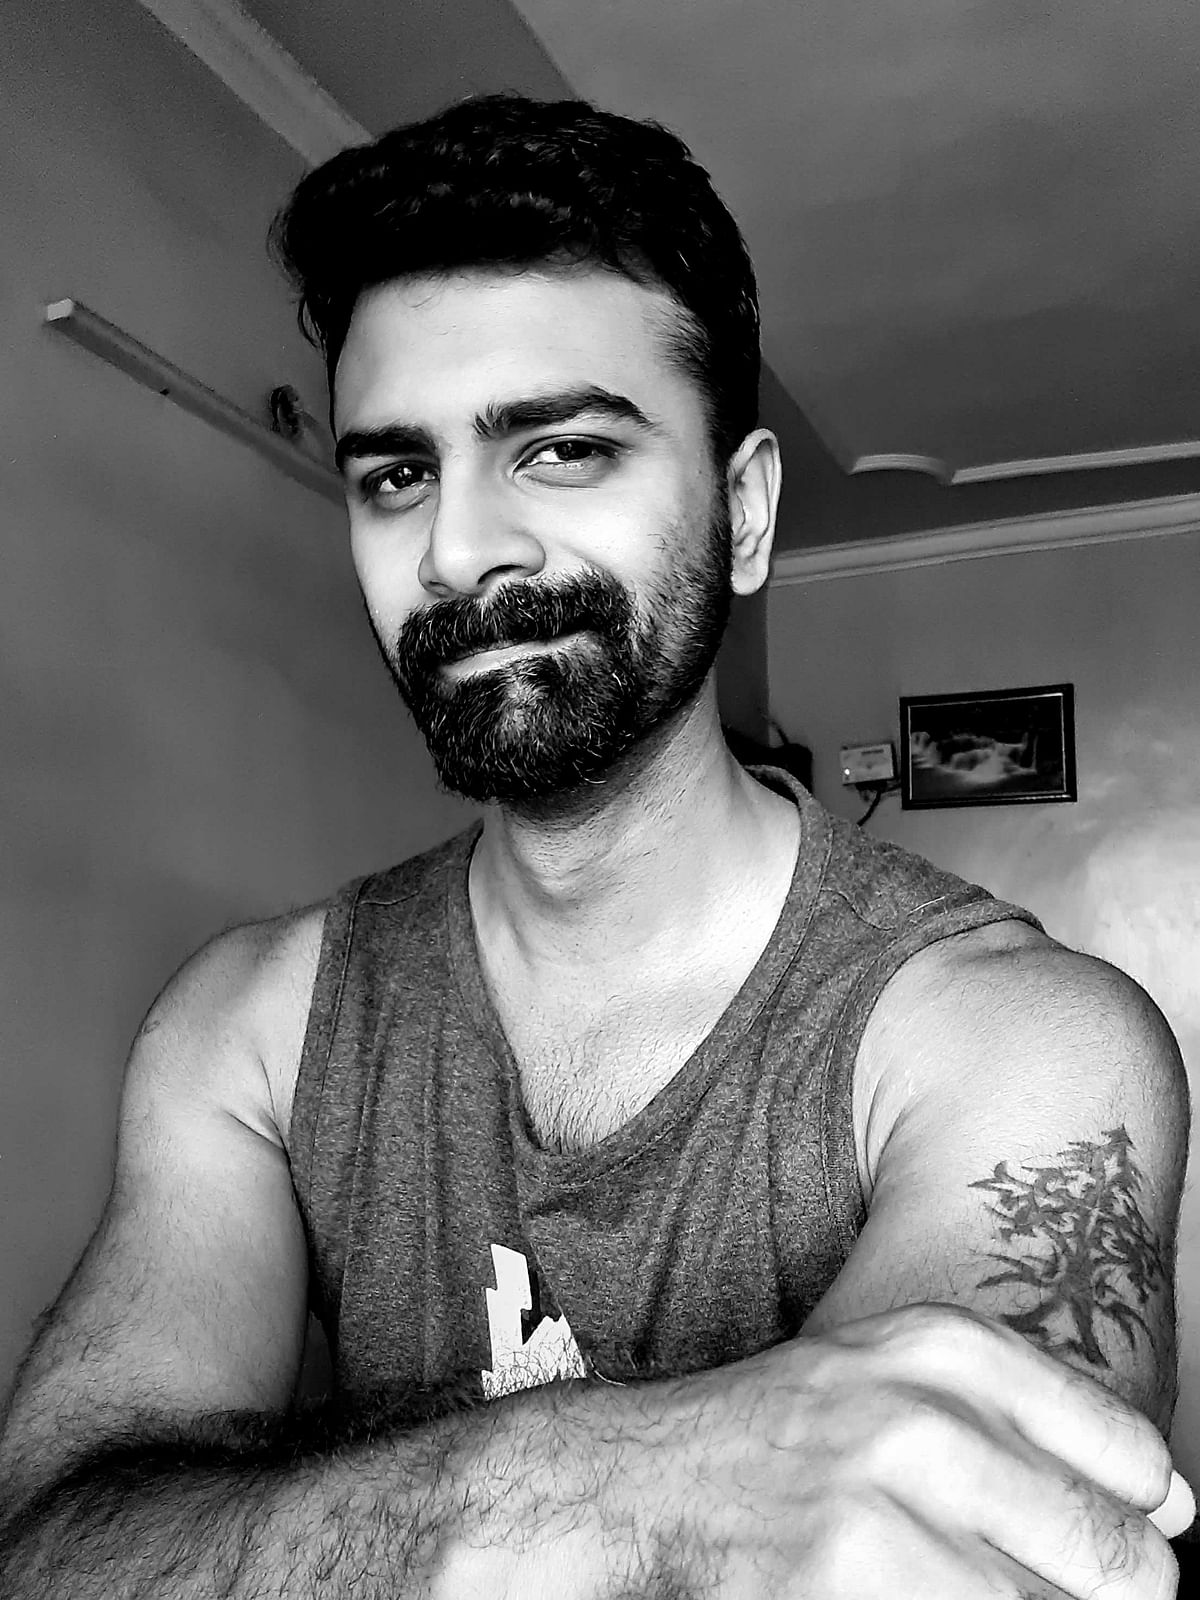 Captured in monochrome mode from the selfie camera.